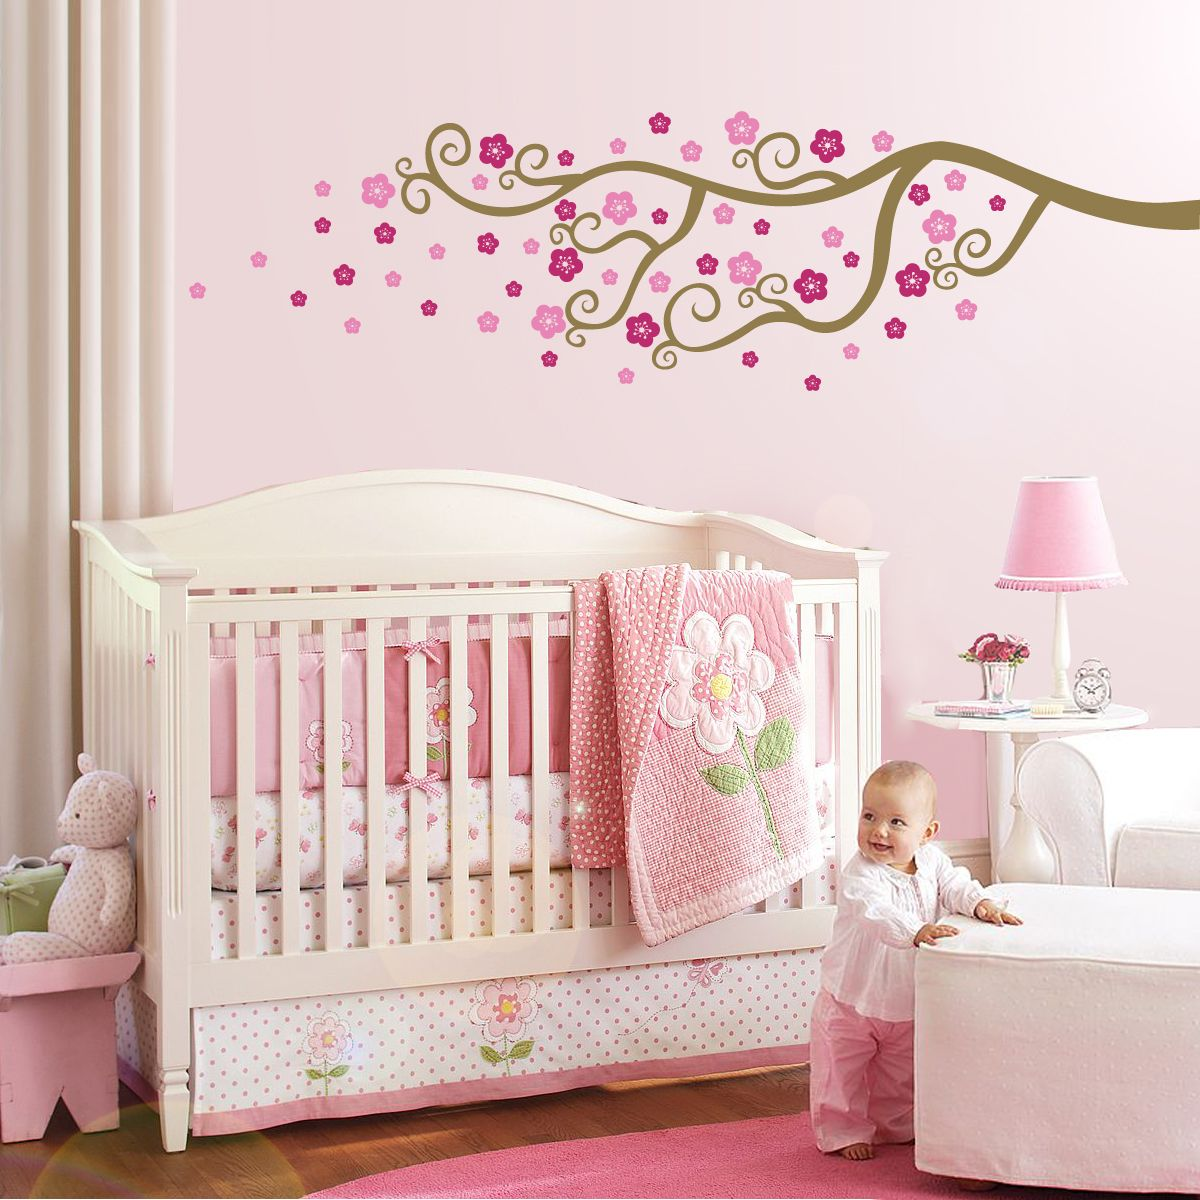 Creative paint ideas for kids bedroom captivating pink Nursery wall ideas